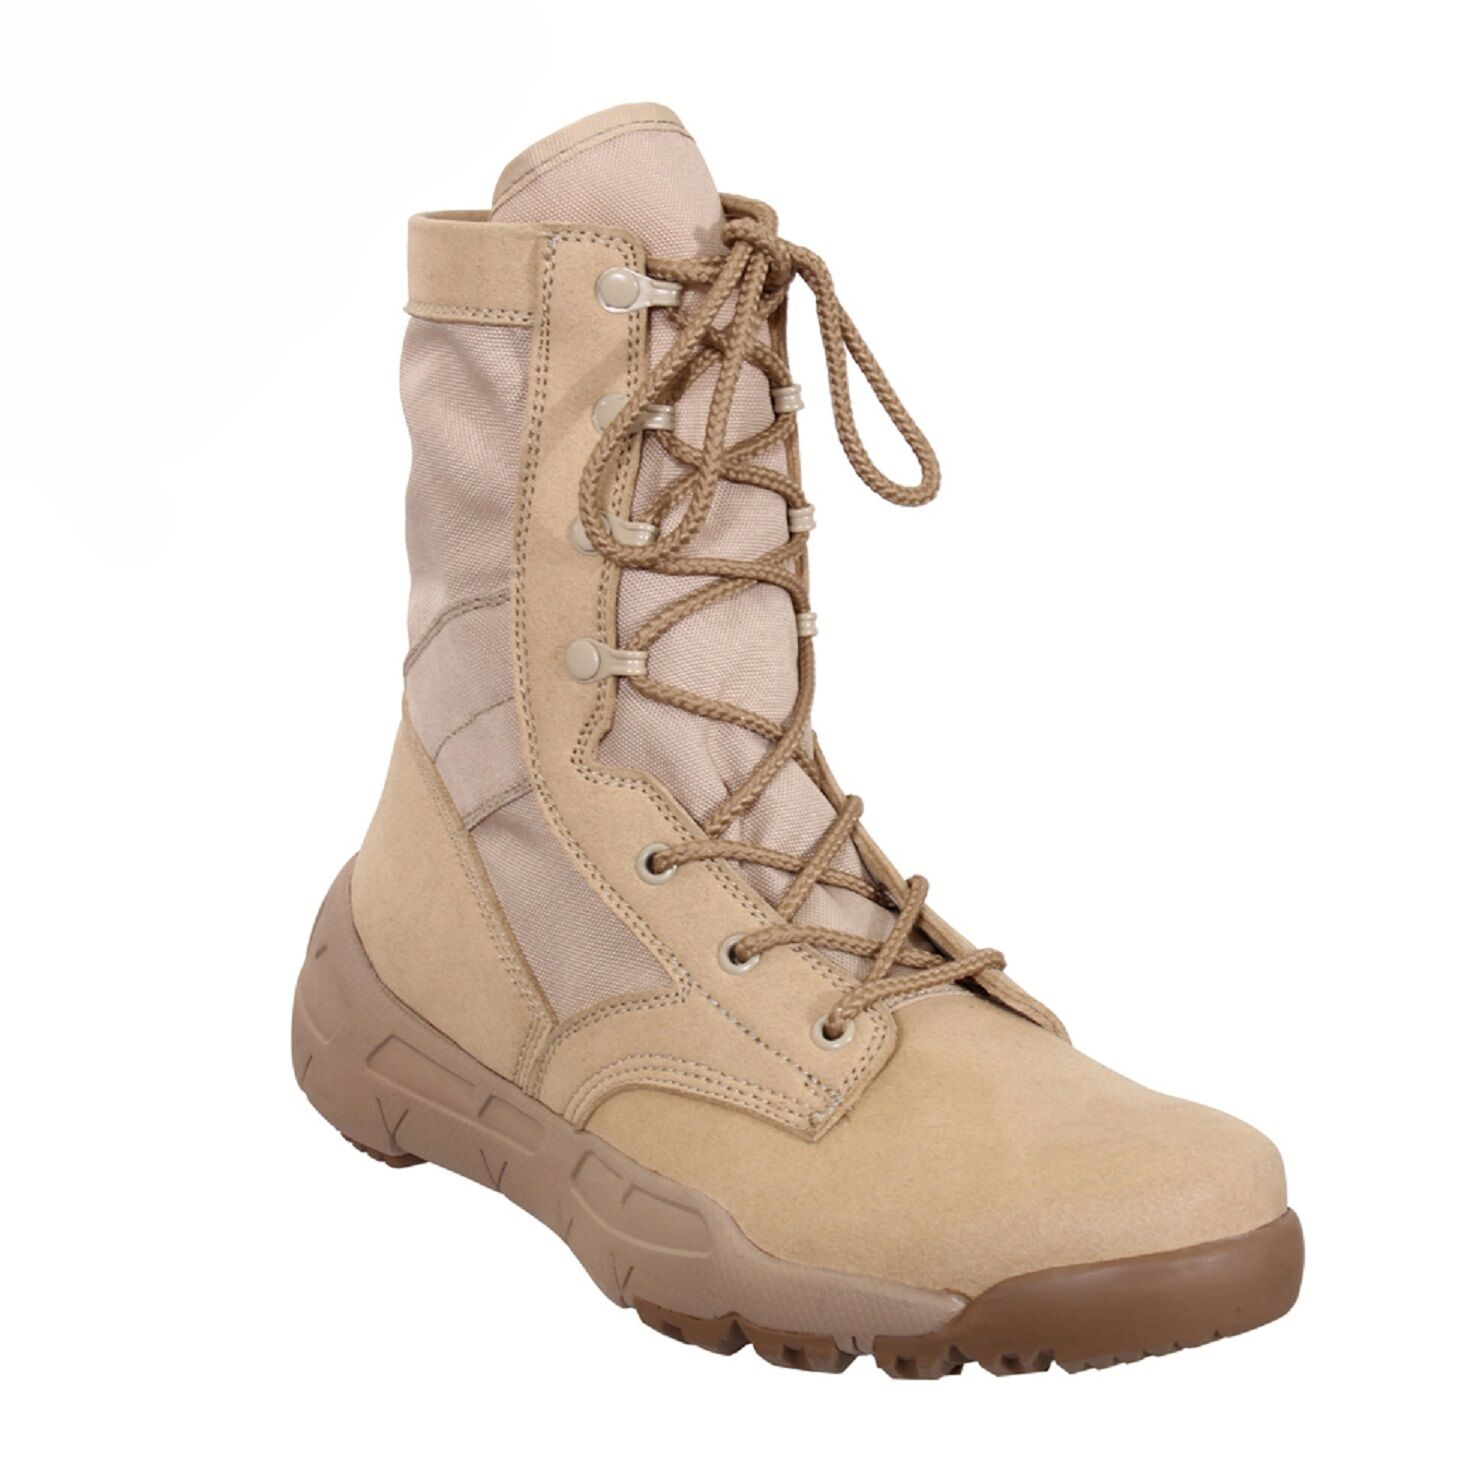 DESERT TAN 8.5  Lightweight V-MAX Tactical BOOTS Athletic shoes Army Navy USMC